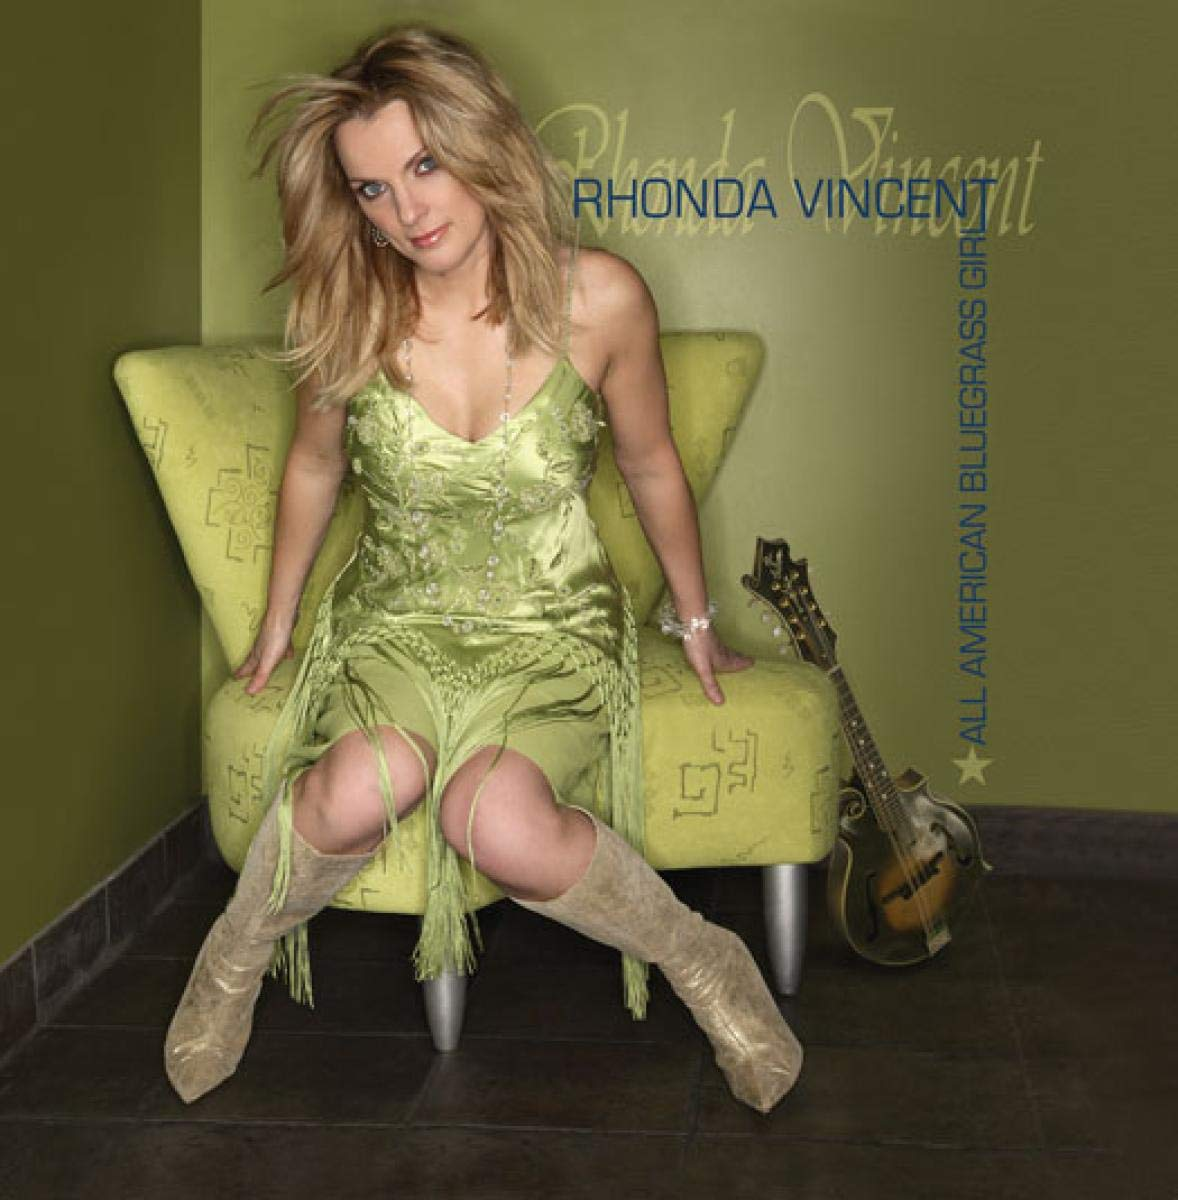 Rhonda Vincent, All American Bluegrass Girl